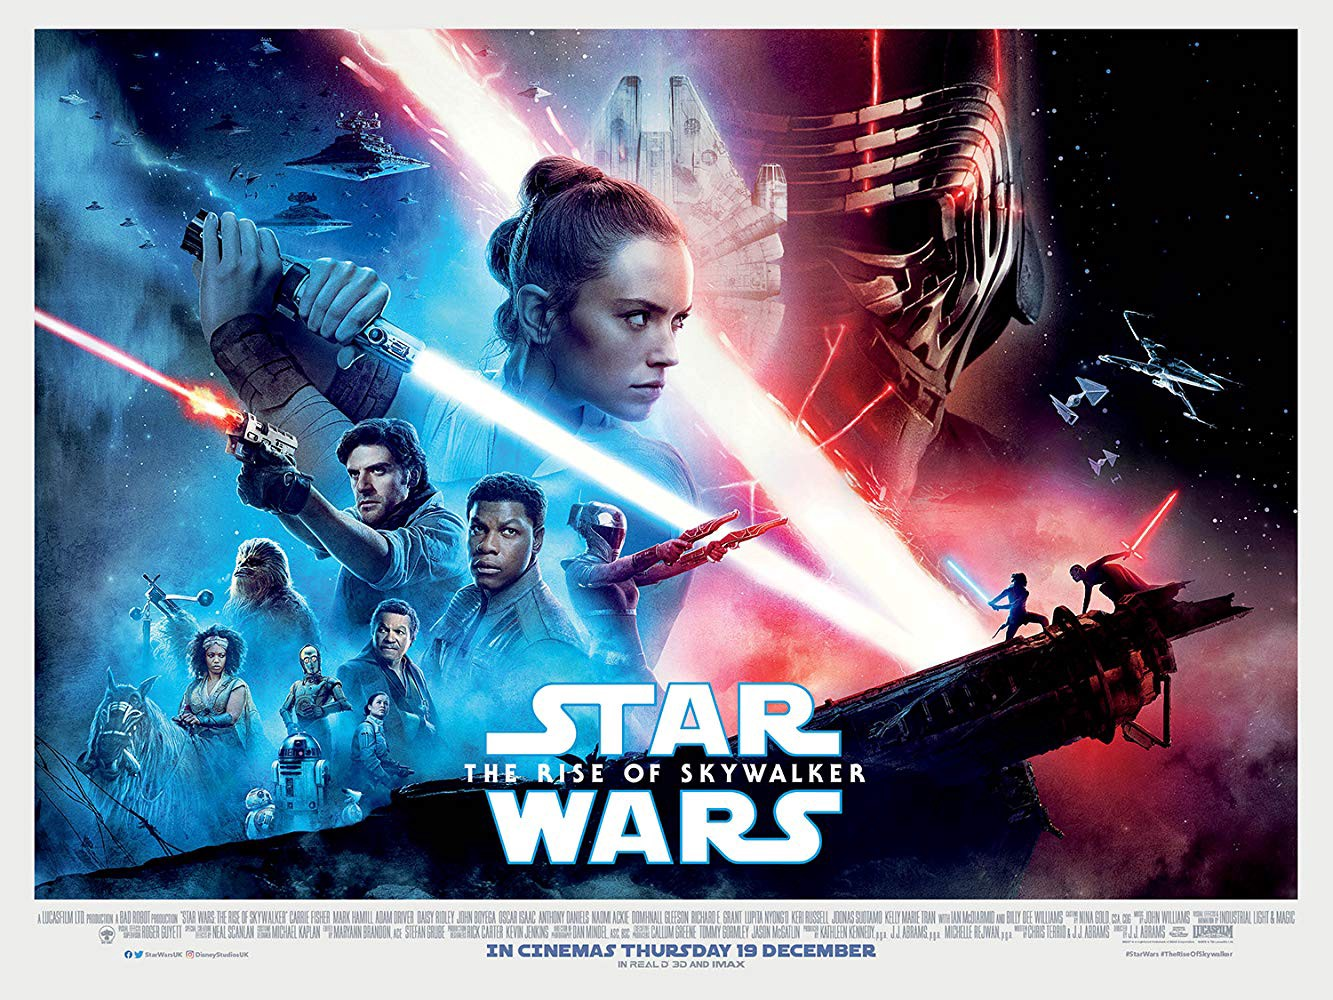 Watch And Download Star Wars The Rise Of Skywalker 2019 Full Movie By Star Warsz Medium